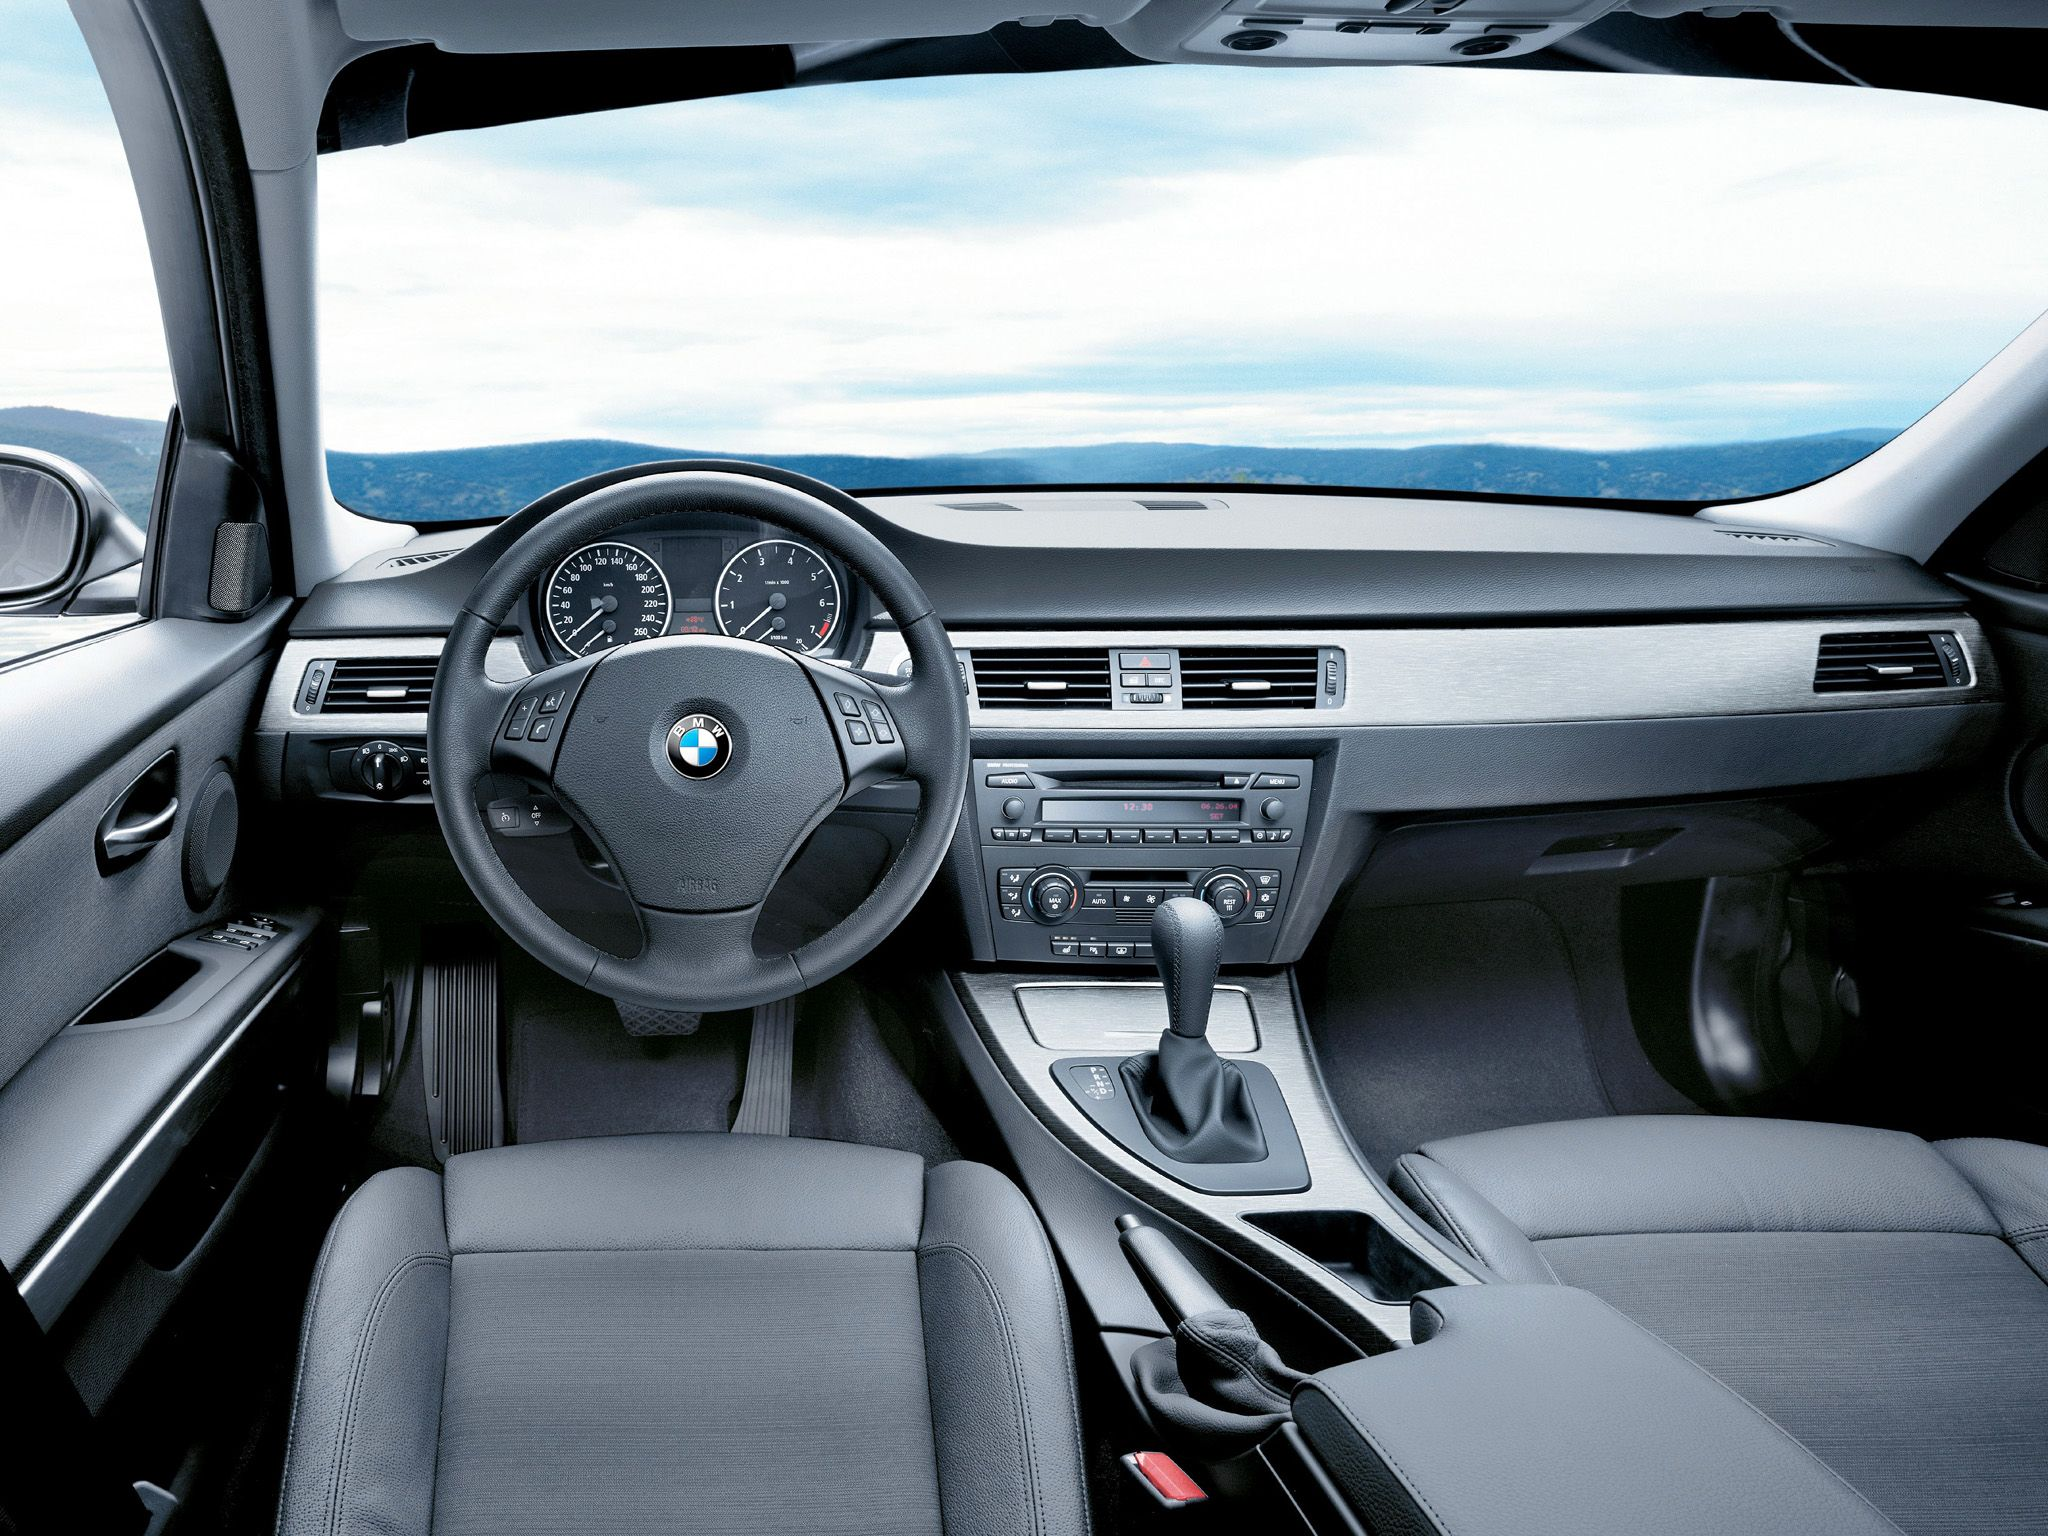 E90 bmw 330i dashboard very sober lay out